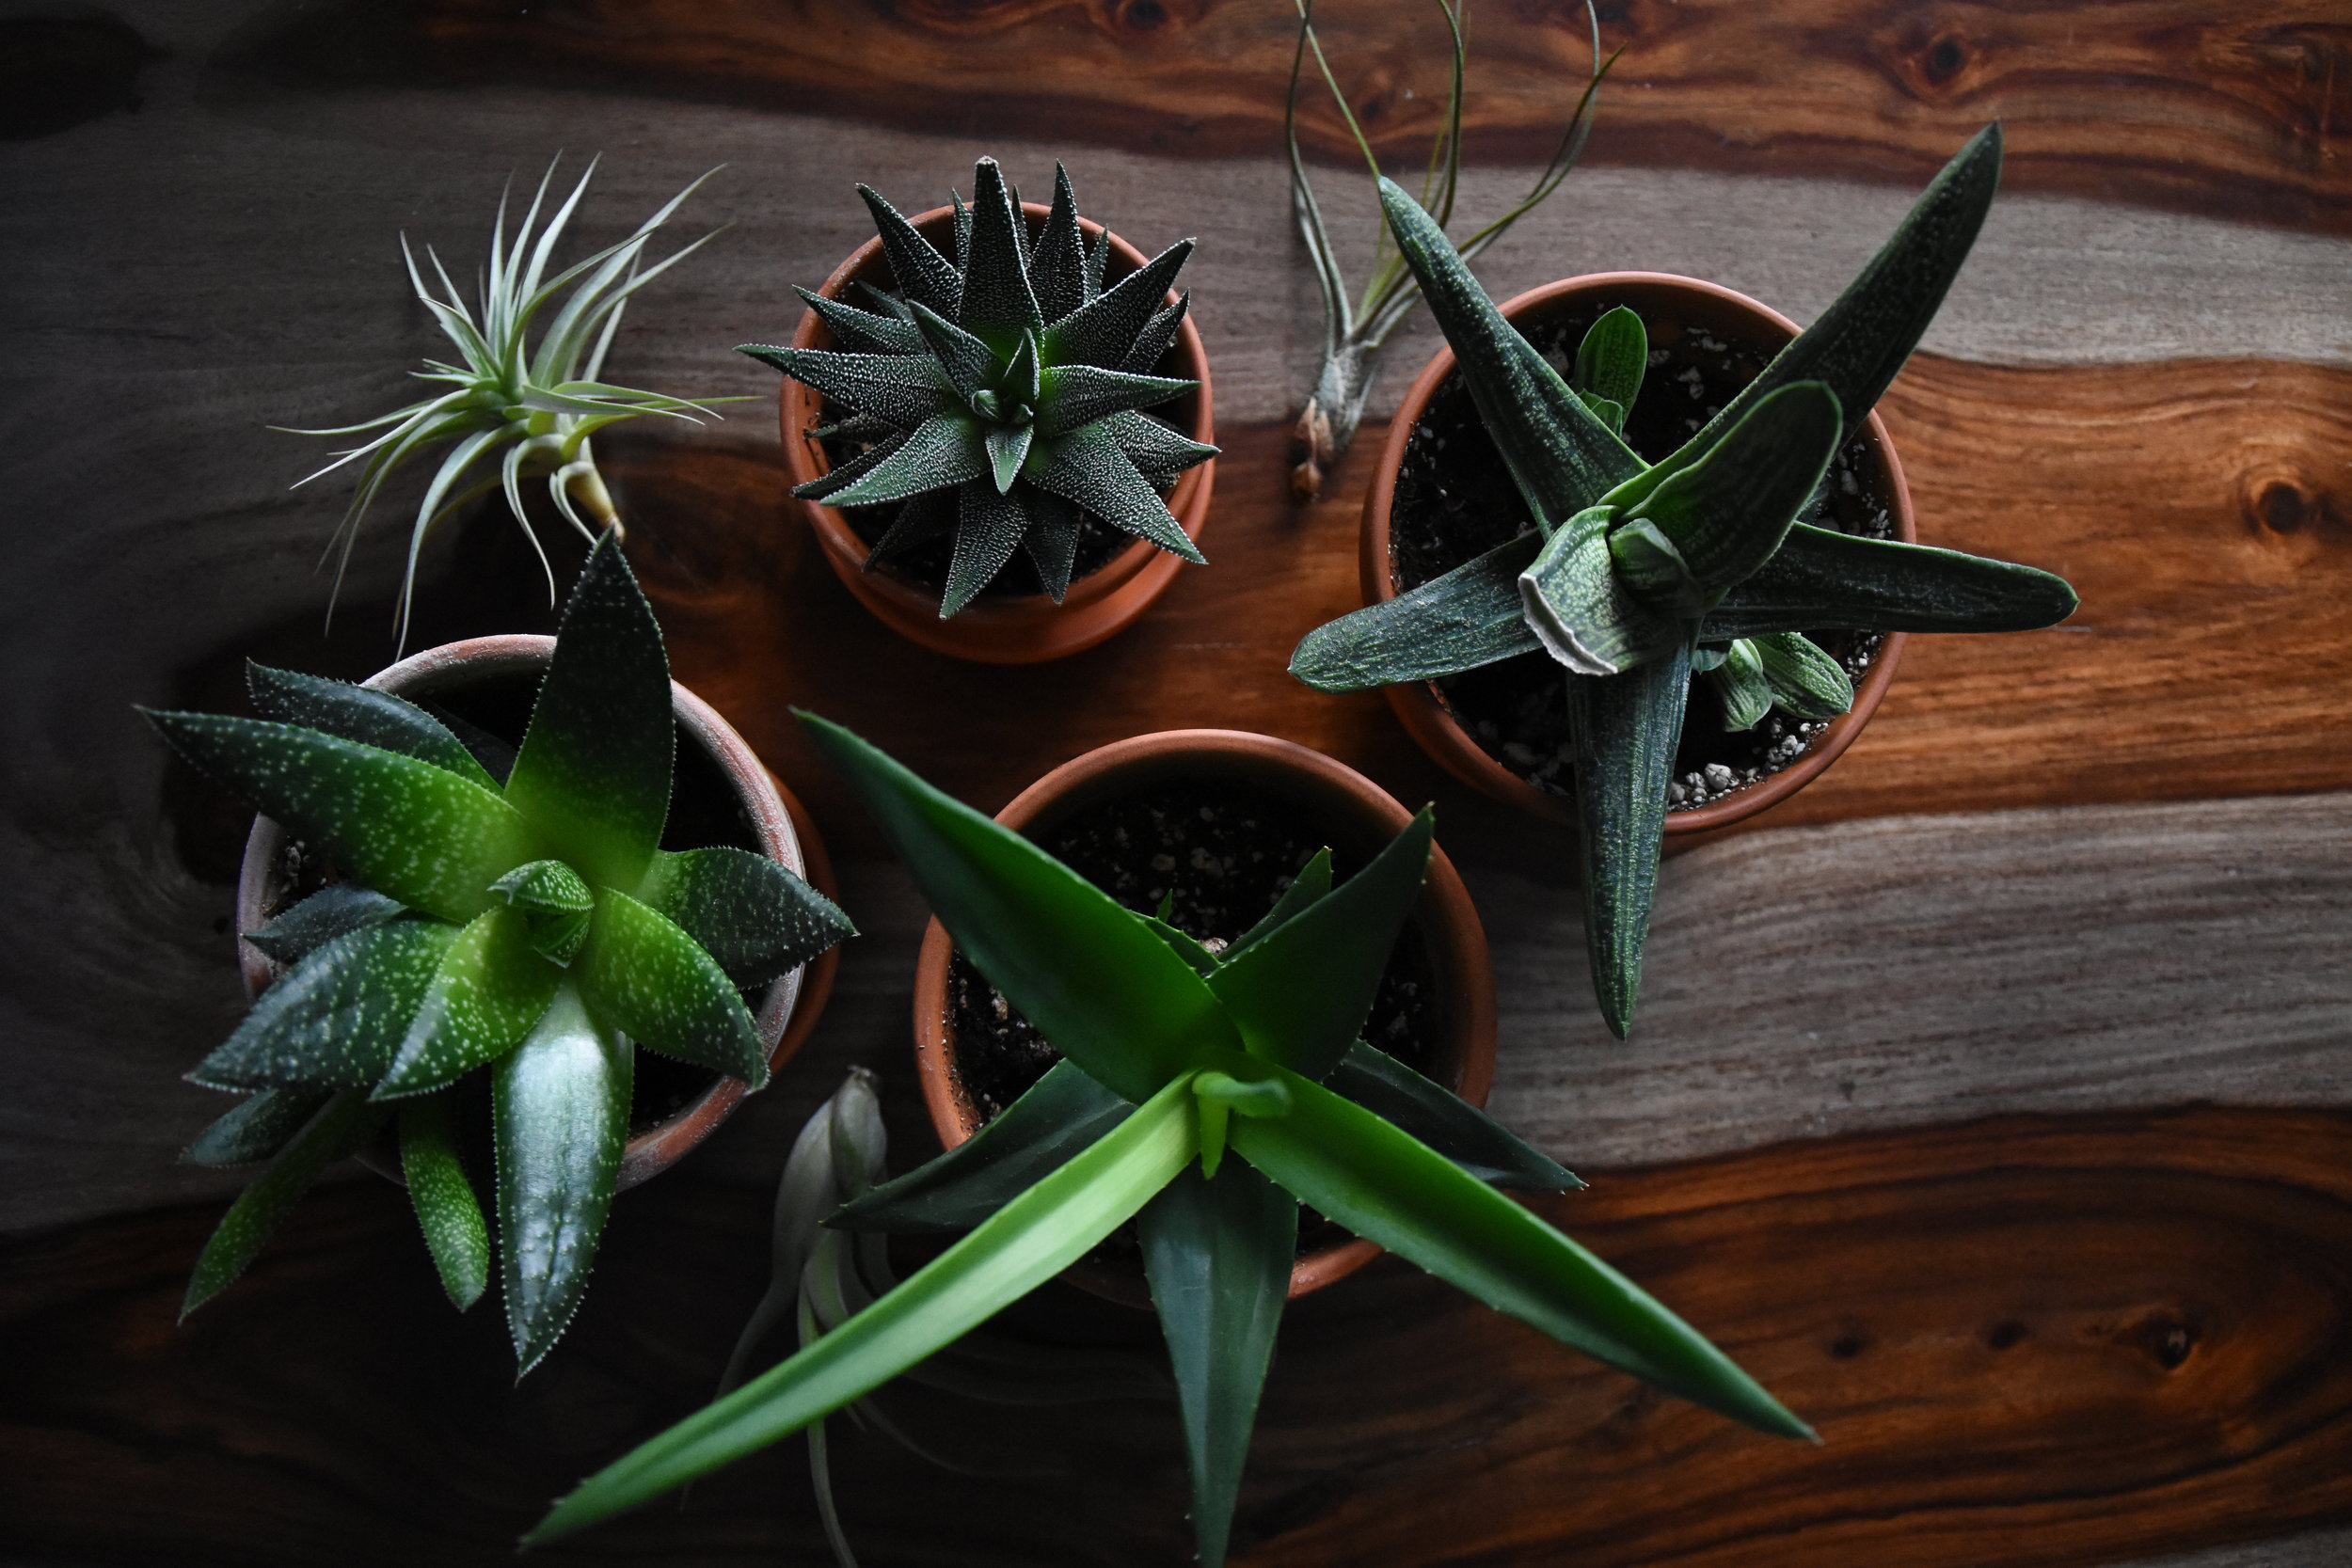 Houseplants_Photo-by-gabriel.jpg